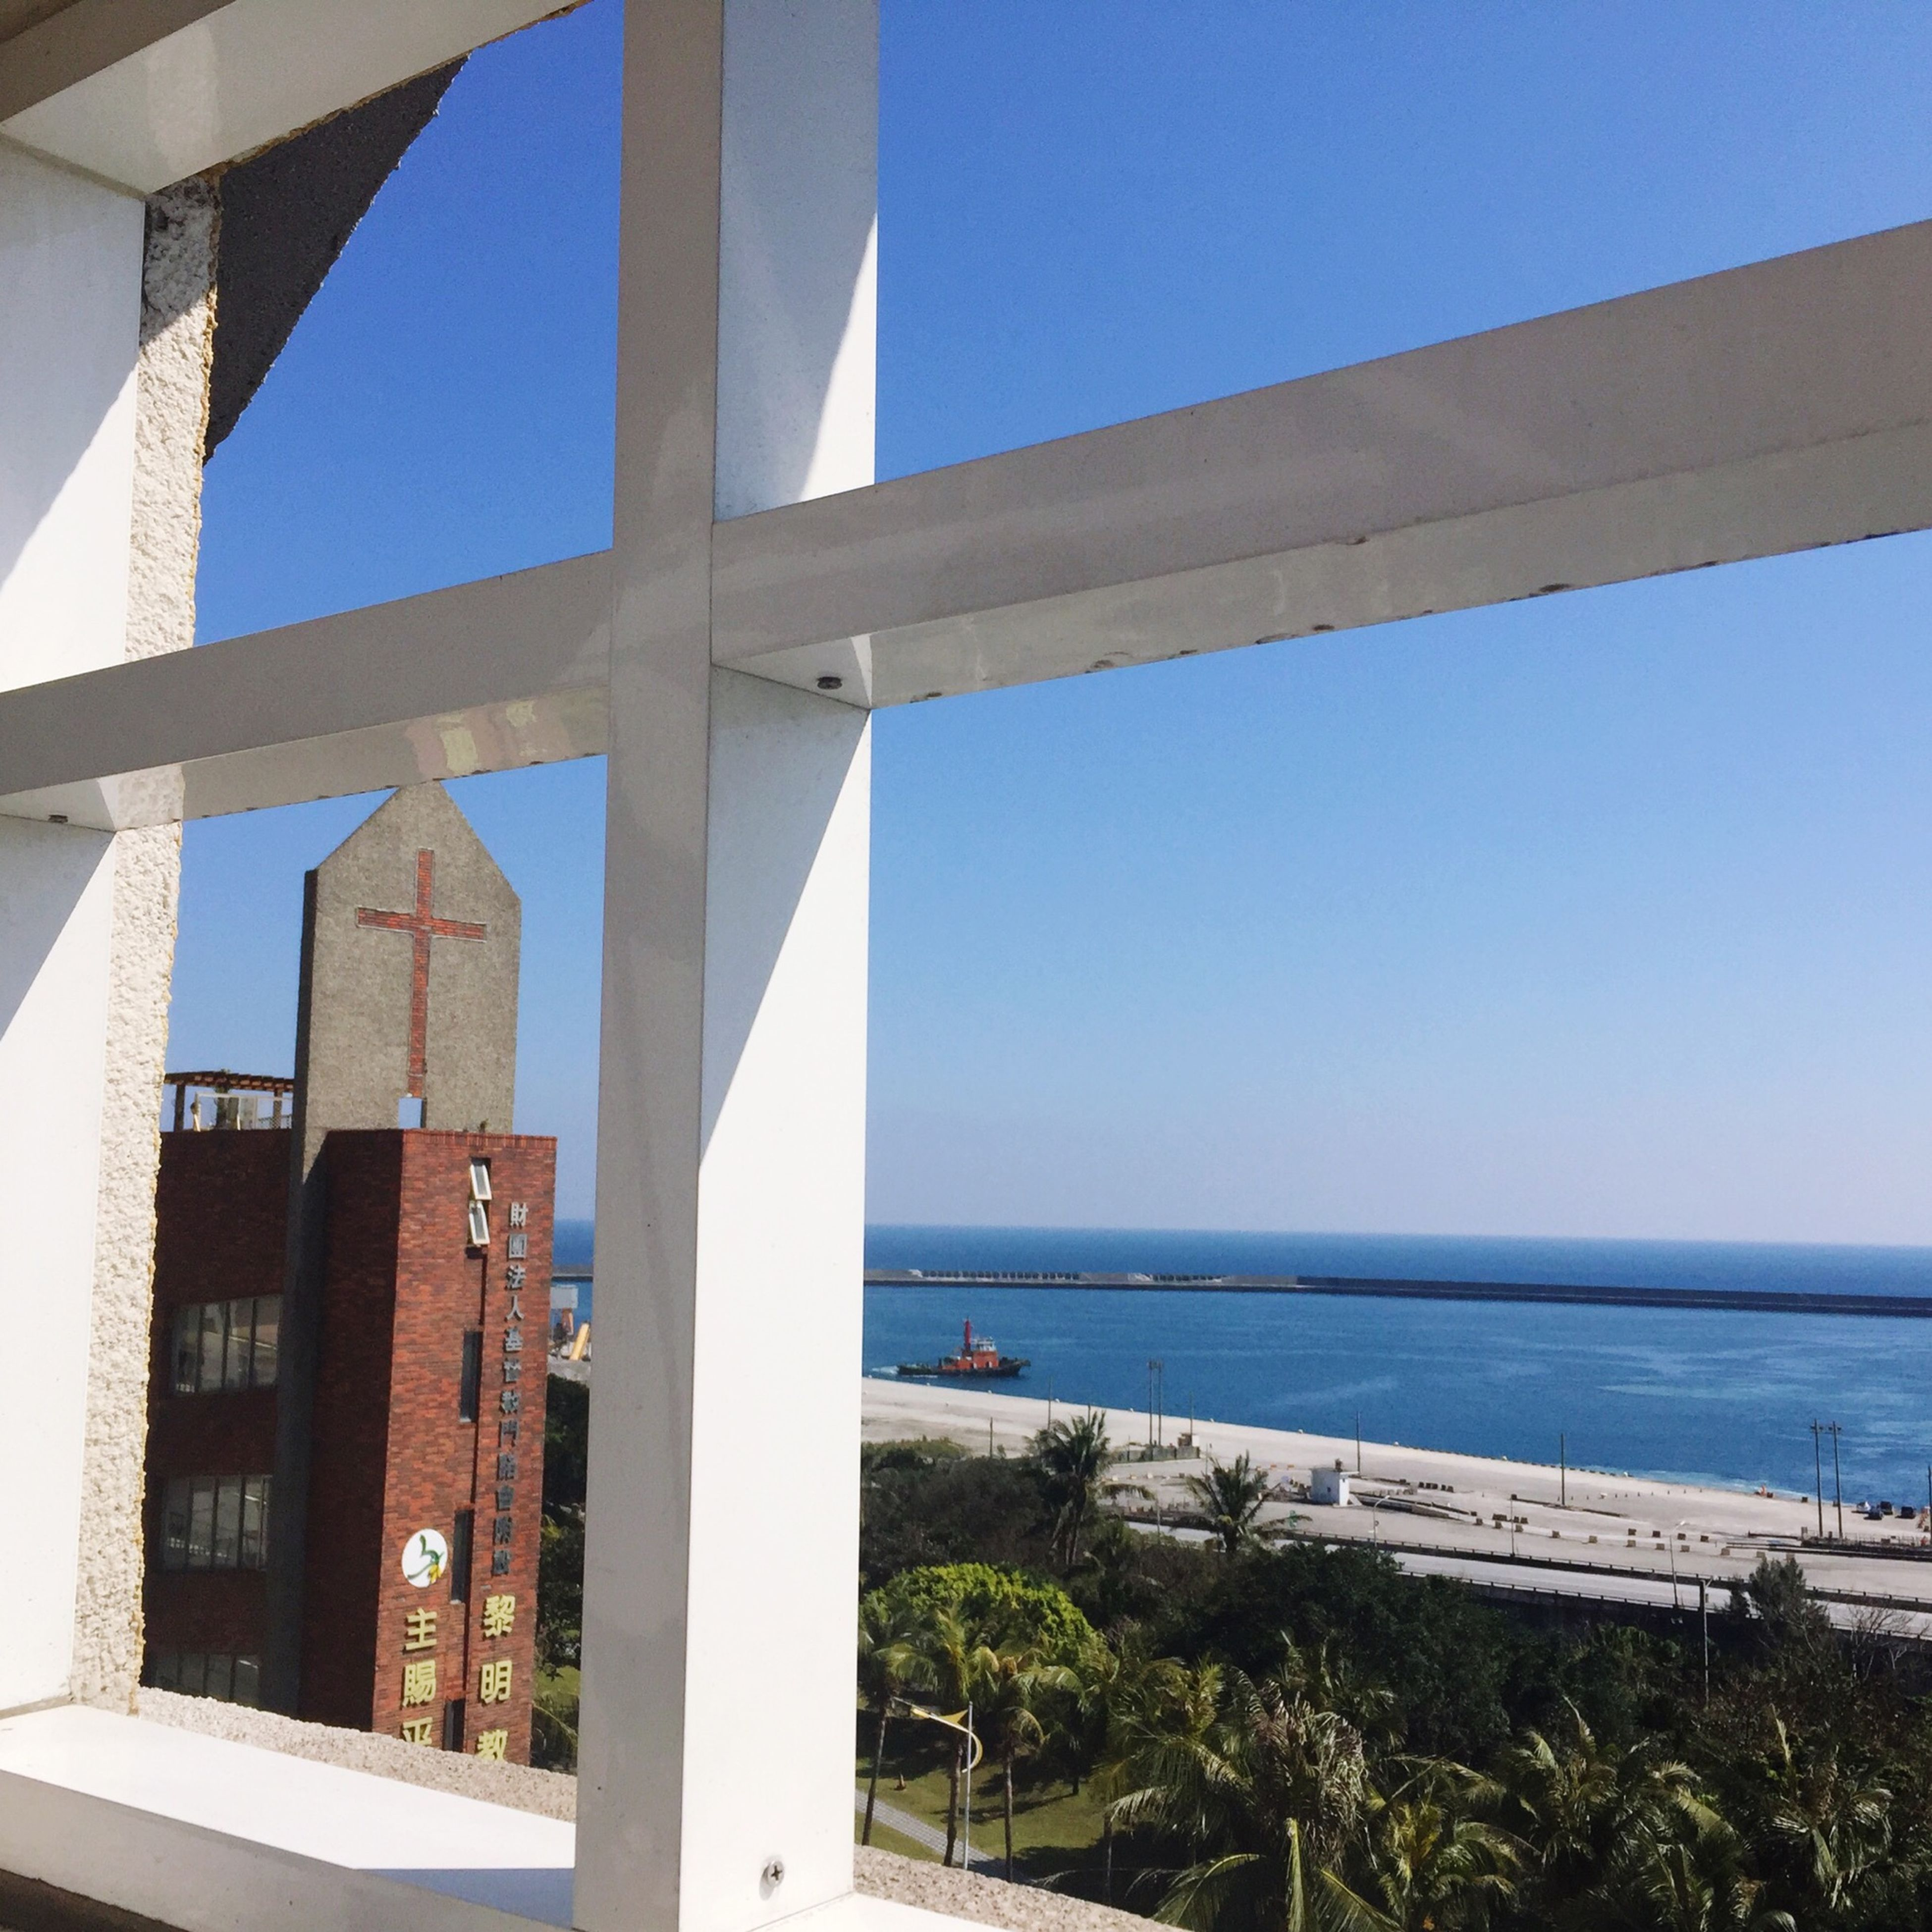 built structure, architecture, sea, horizon over water, water, beach, clear sky, building exterior, blue, sky, shore, sunlight, day, sand, nature, outdoors, architectural column, no people, scenics, coastline